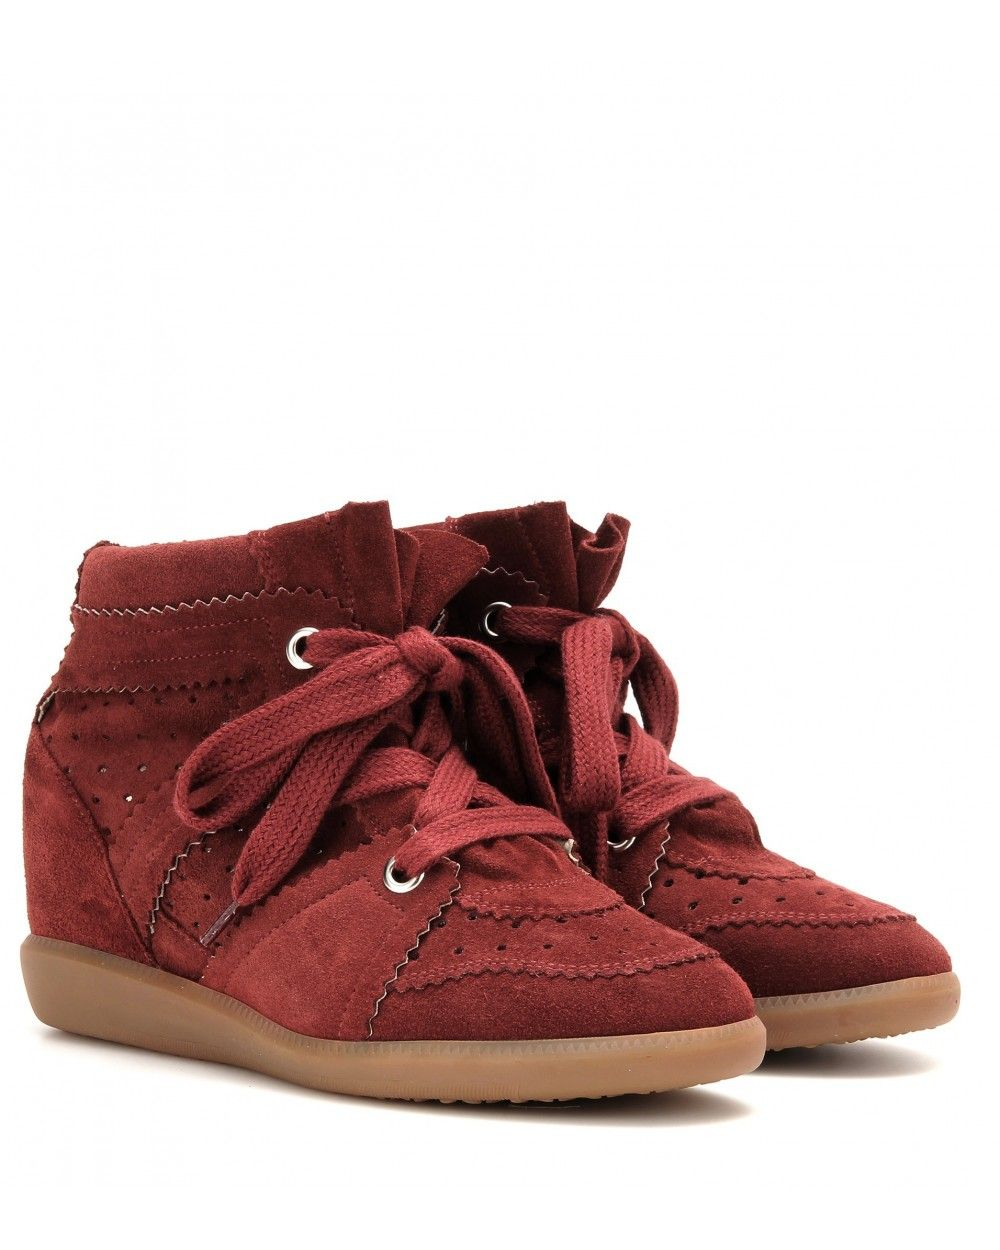 b920f9d5e2 Isabel Marant Etoile Bobby Suede Wedge Sneakers Burgundy - Isabel Marant  #isabelmarant #shoes #sneakers #women #womenfashion #newyear #fashion #gifts